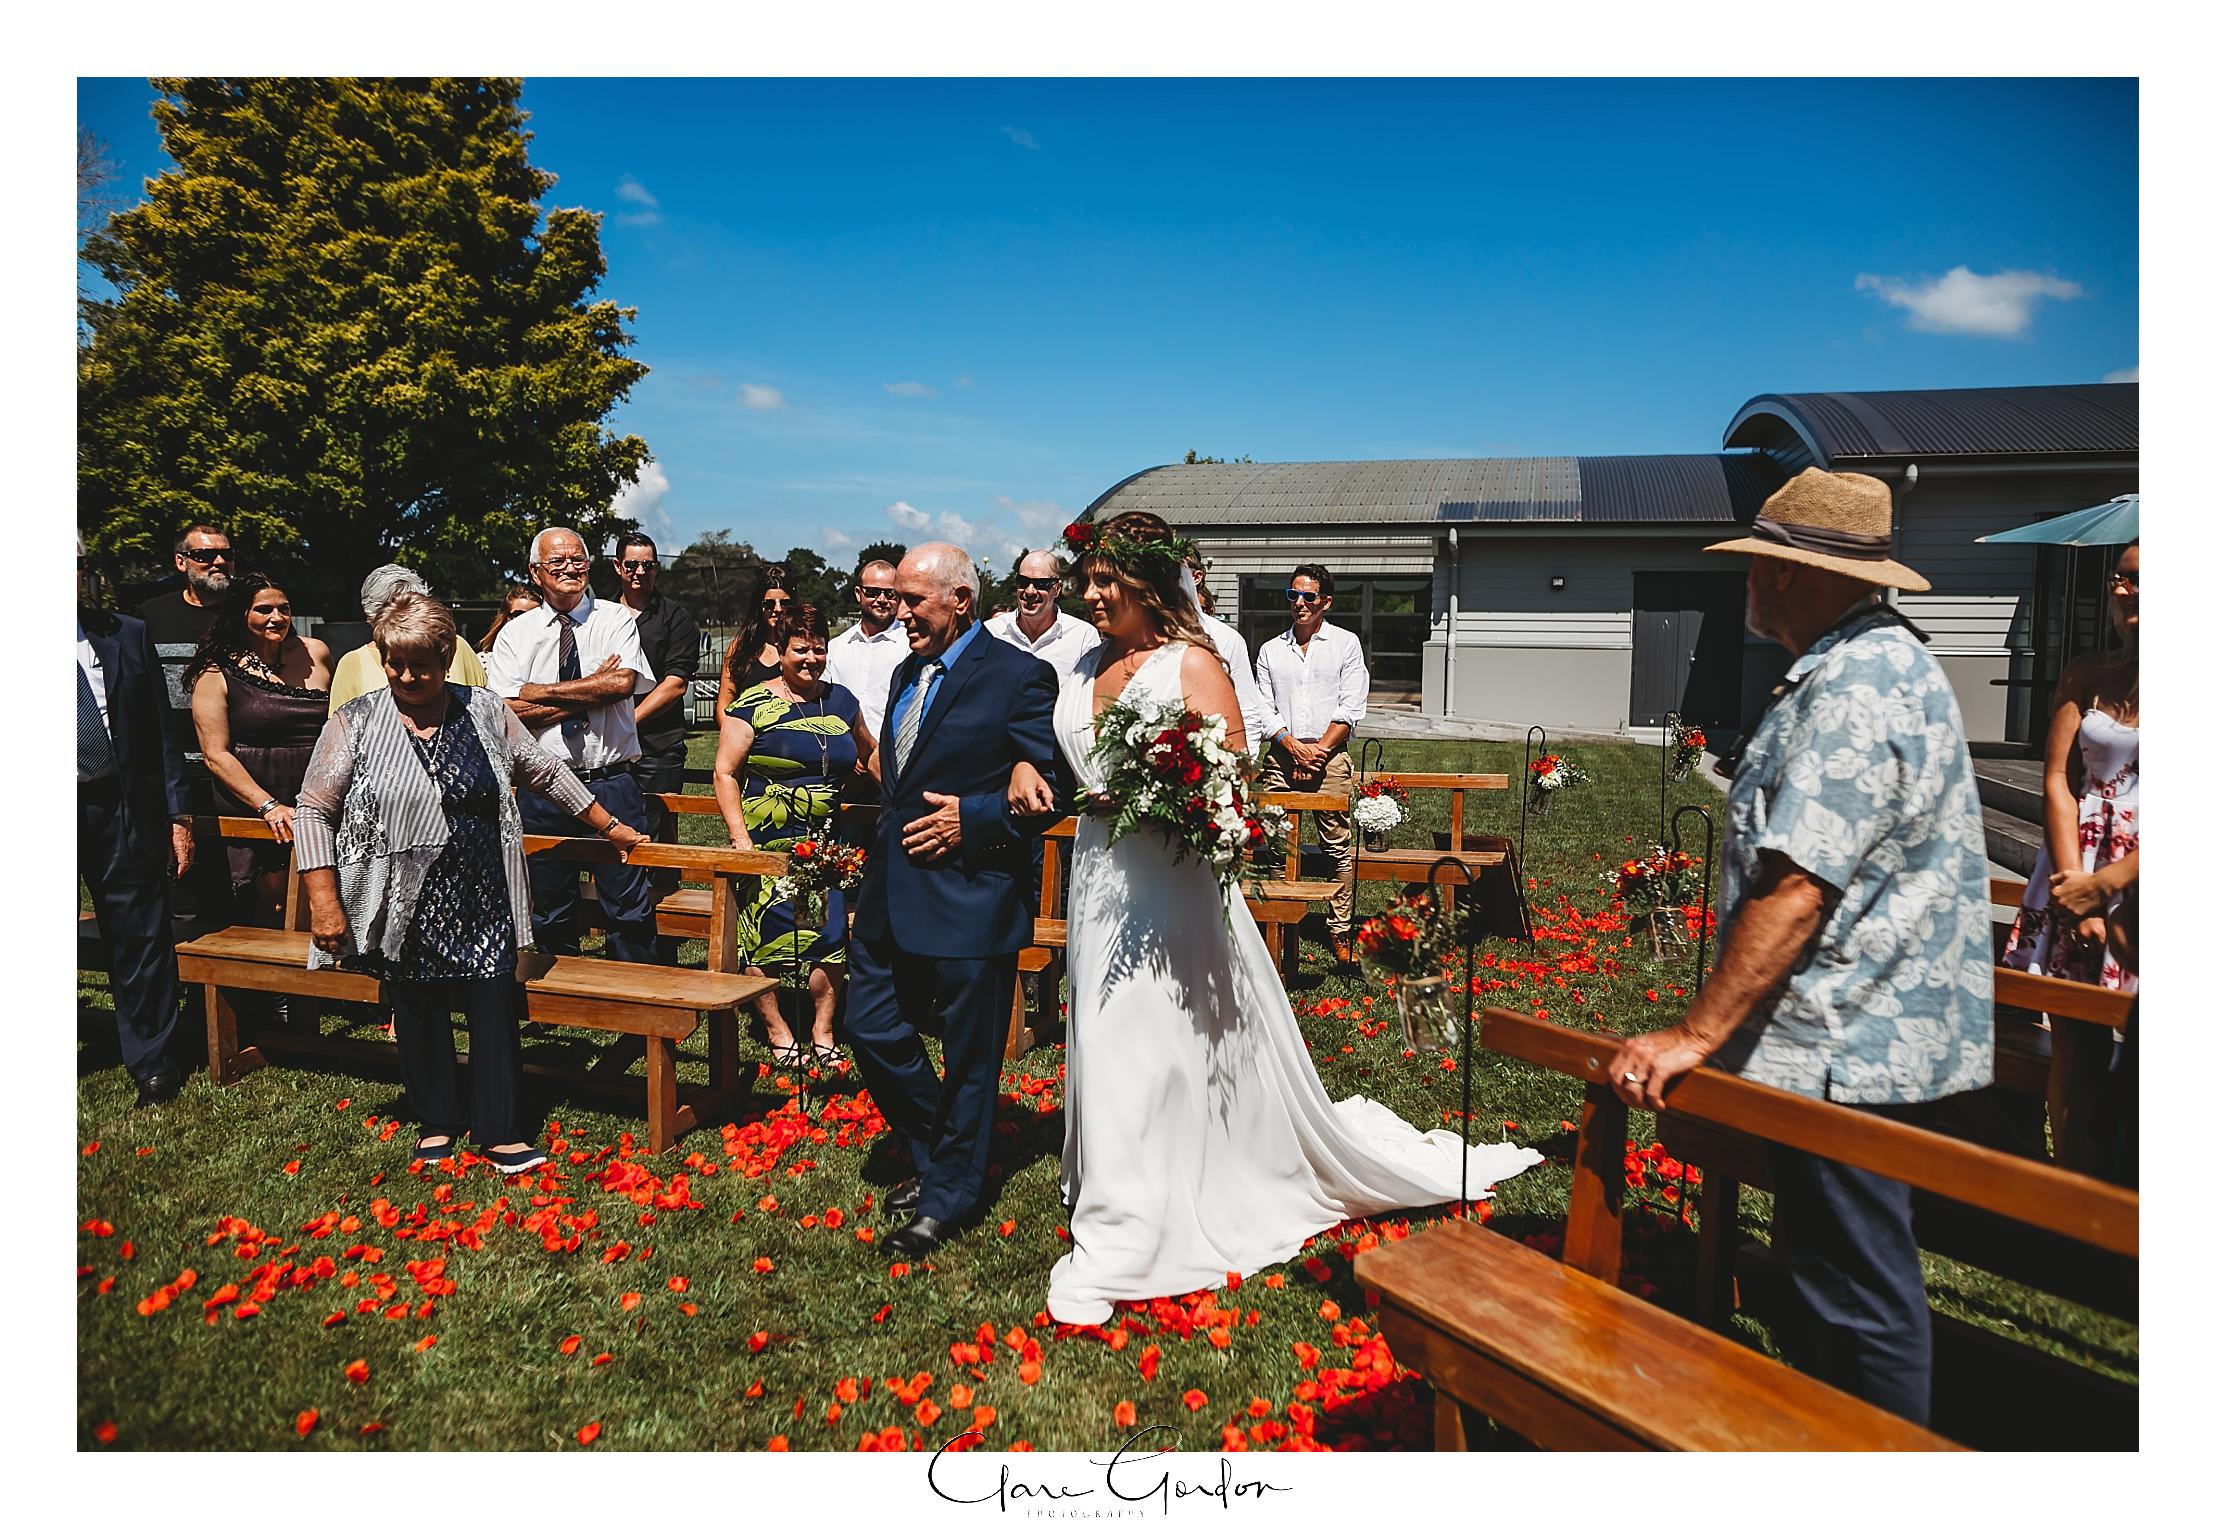 Tauranga-bay-of-plenty-Wedding-Forest-wedding (23).jpg